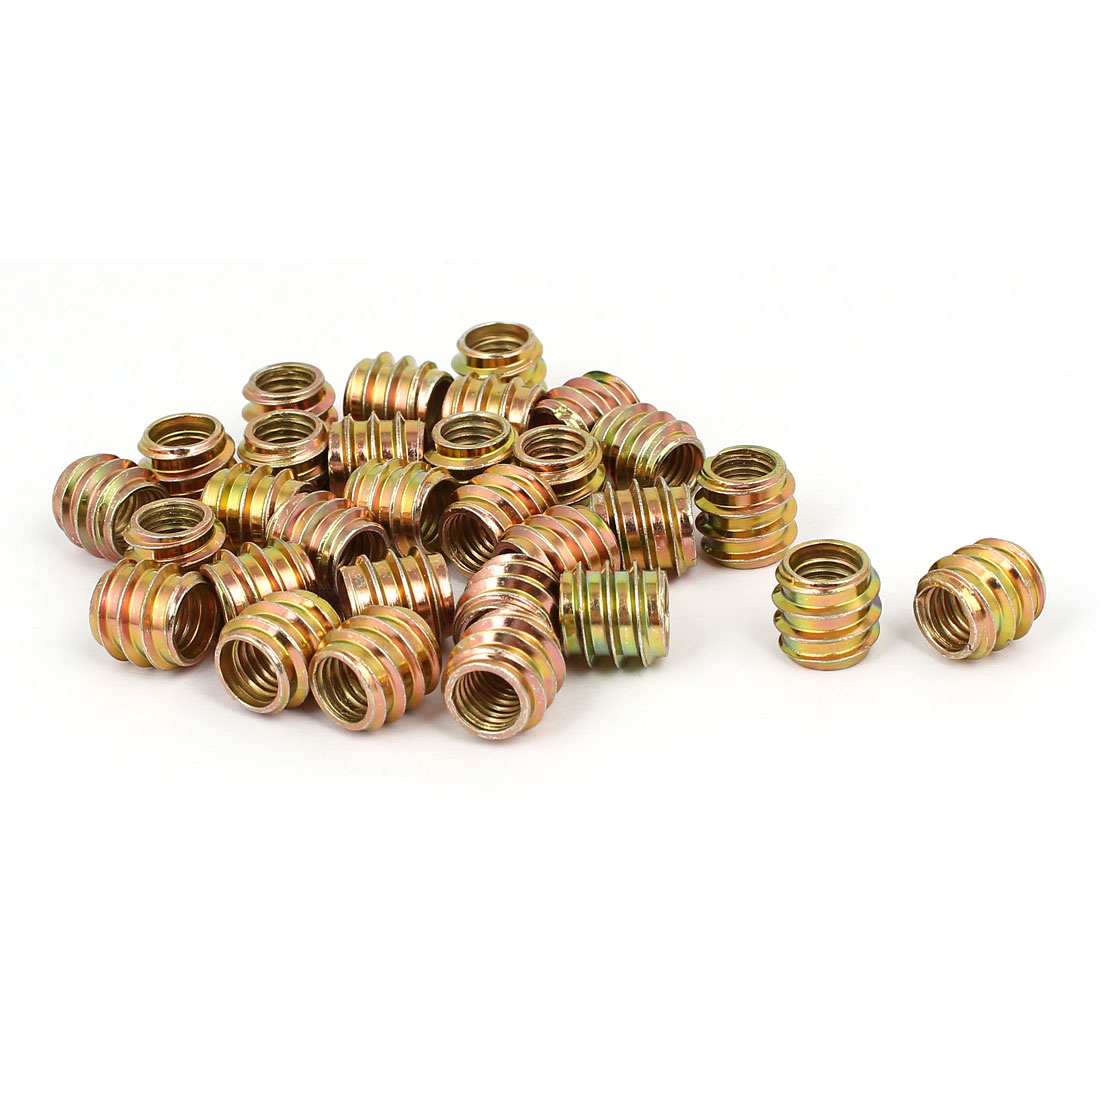 M8x12mm Carbon Steel Yellow Zinc Plated Furniture Threaded Insert Nut 30pcs